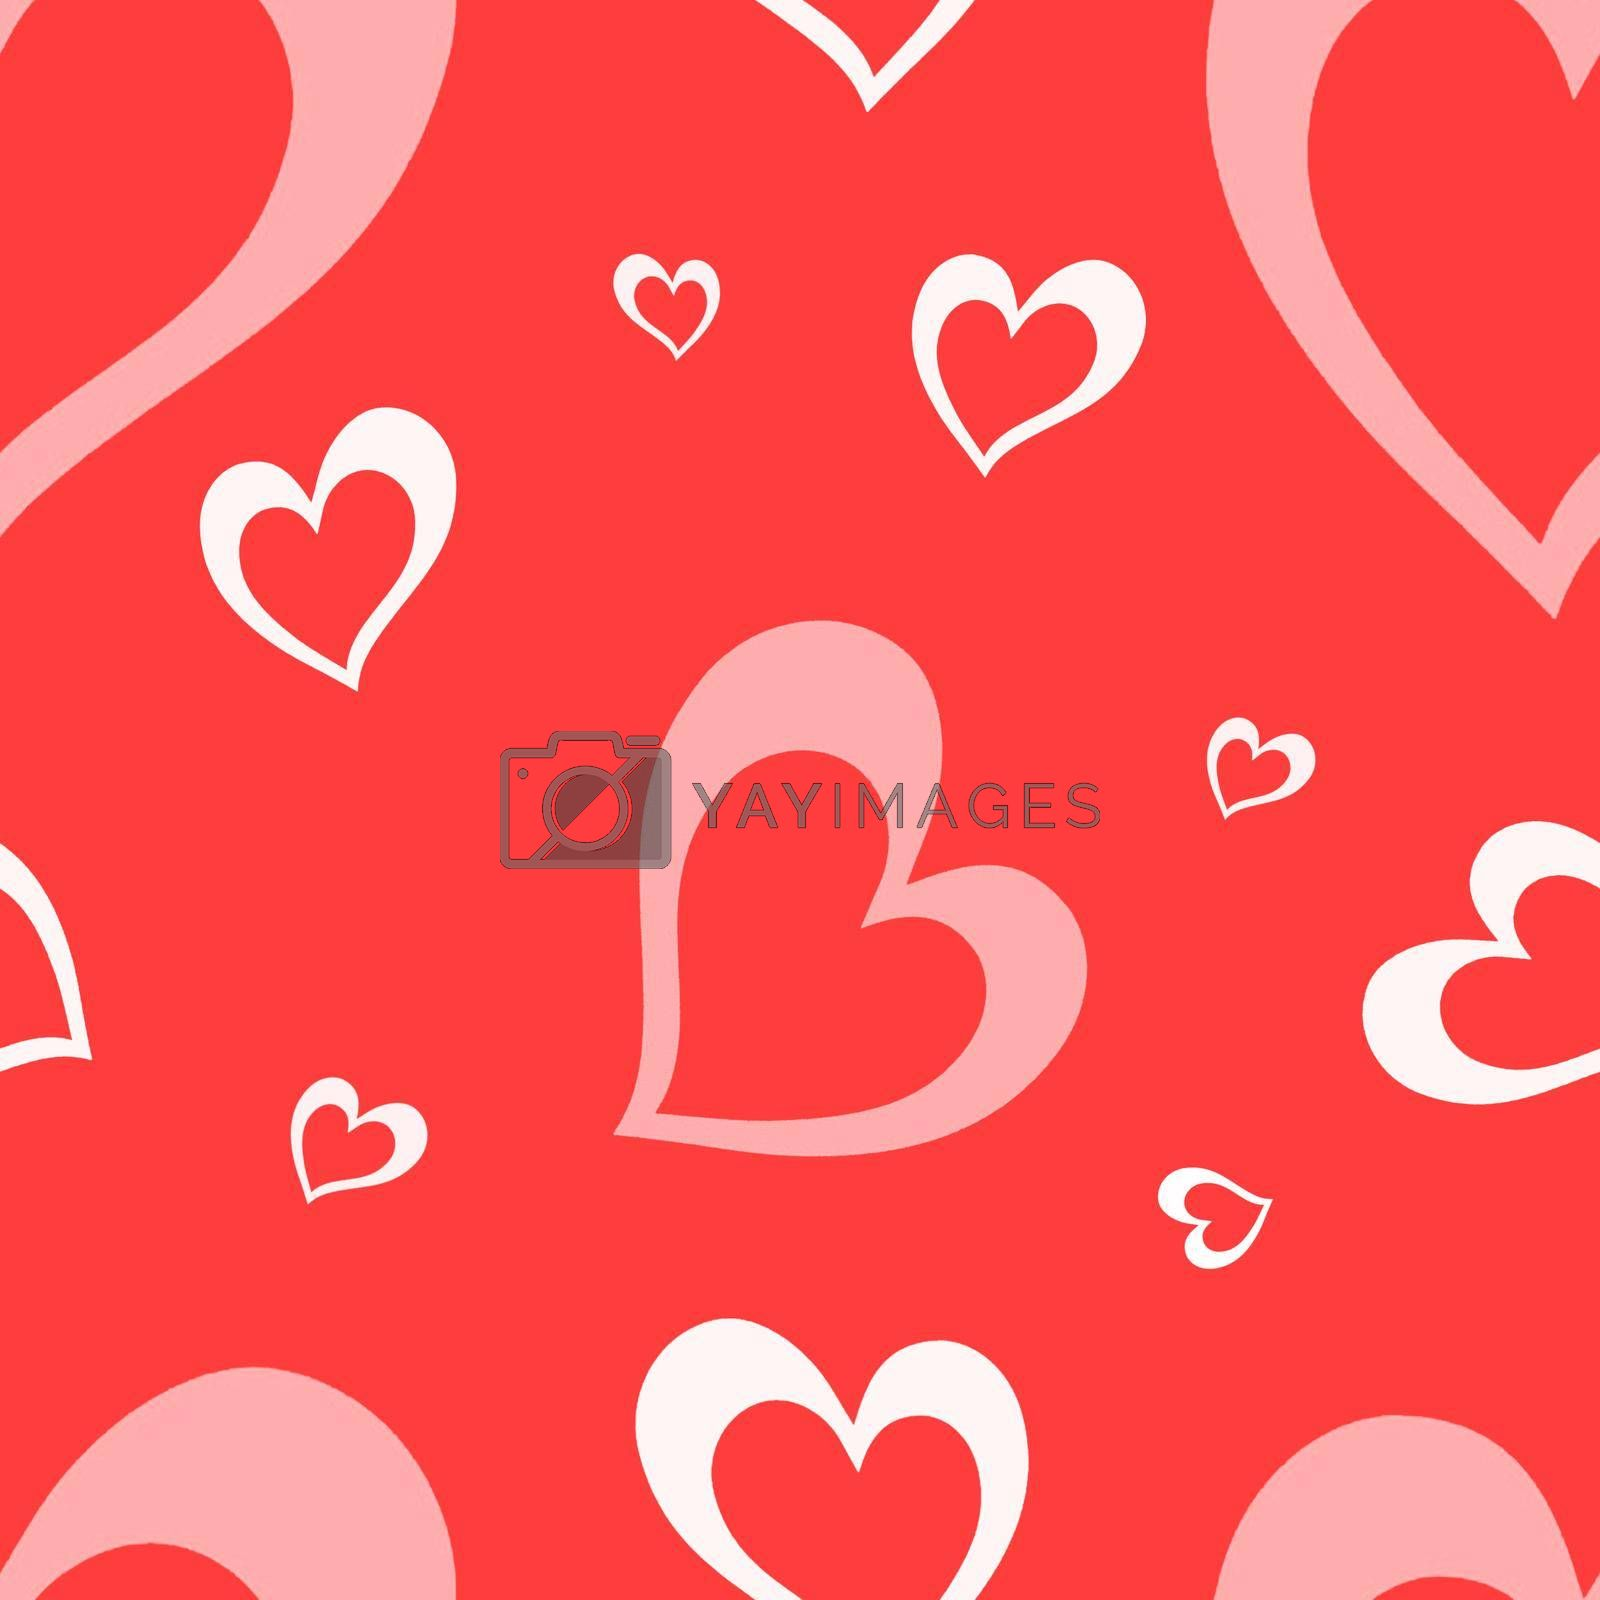 Seamless pattern with elements for Valentine's Day on a red background. Cute hearts. High quality photo